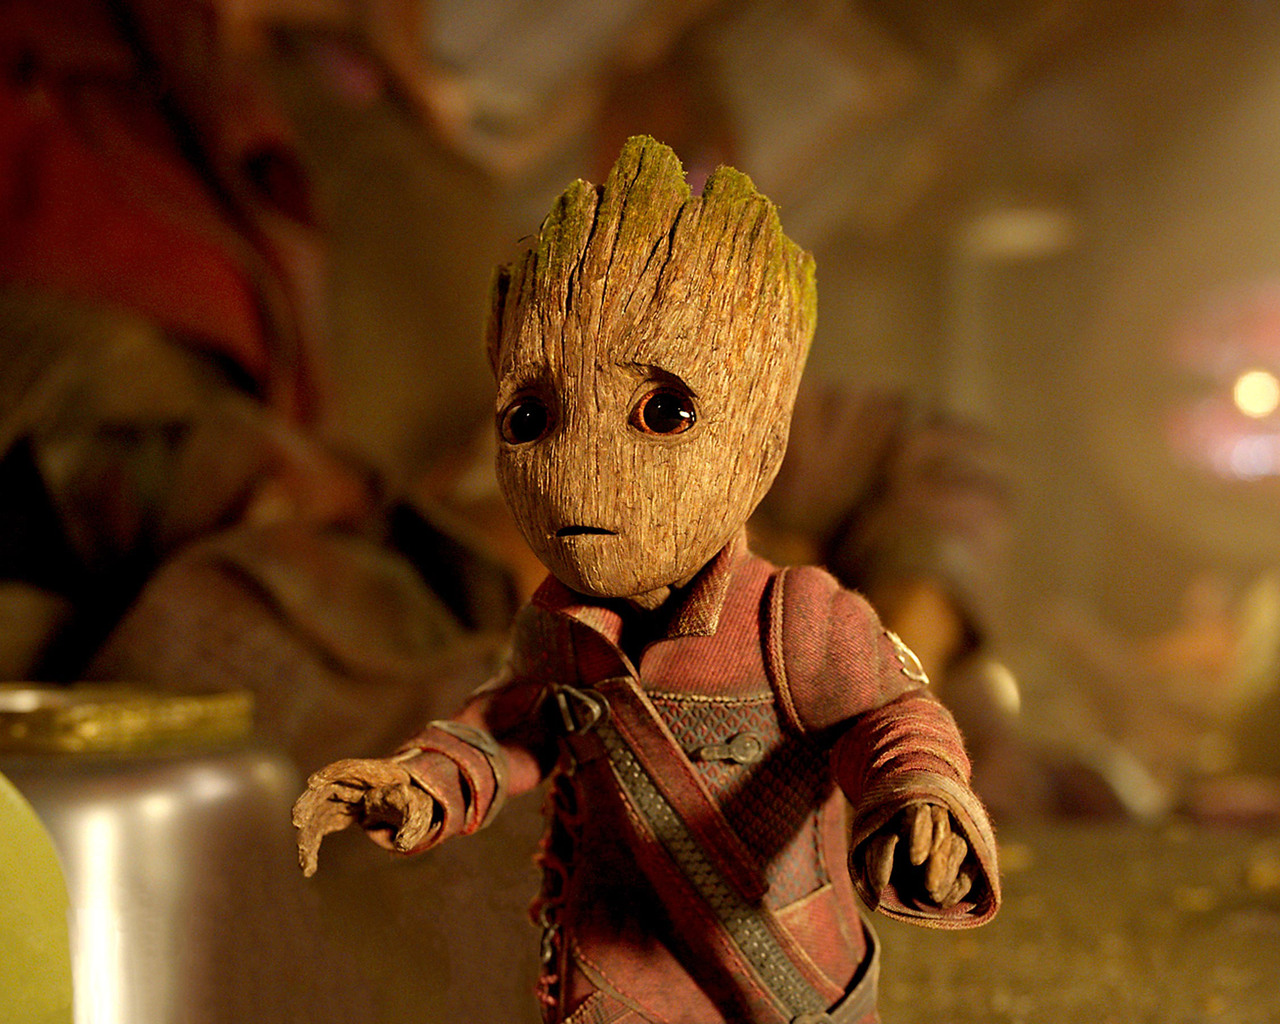 Baby Groot Guardians Of The Galaxy Vol 2 Hd Movies 4k: 1280x1024 Baby Groot Guardians Of The Galaxy Vol 2